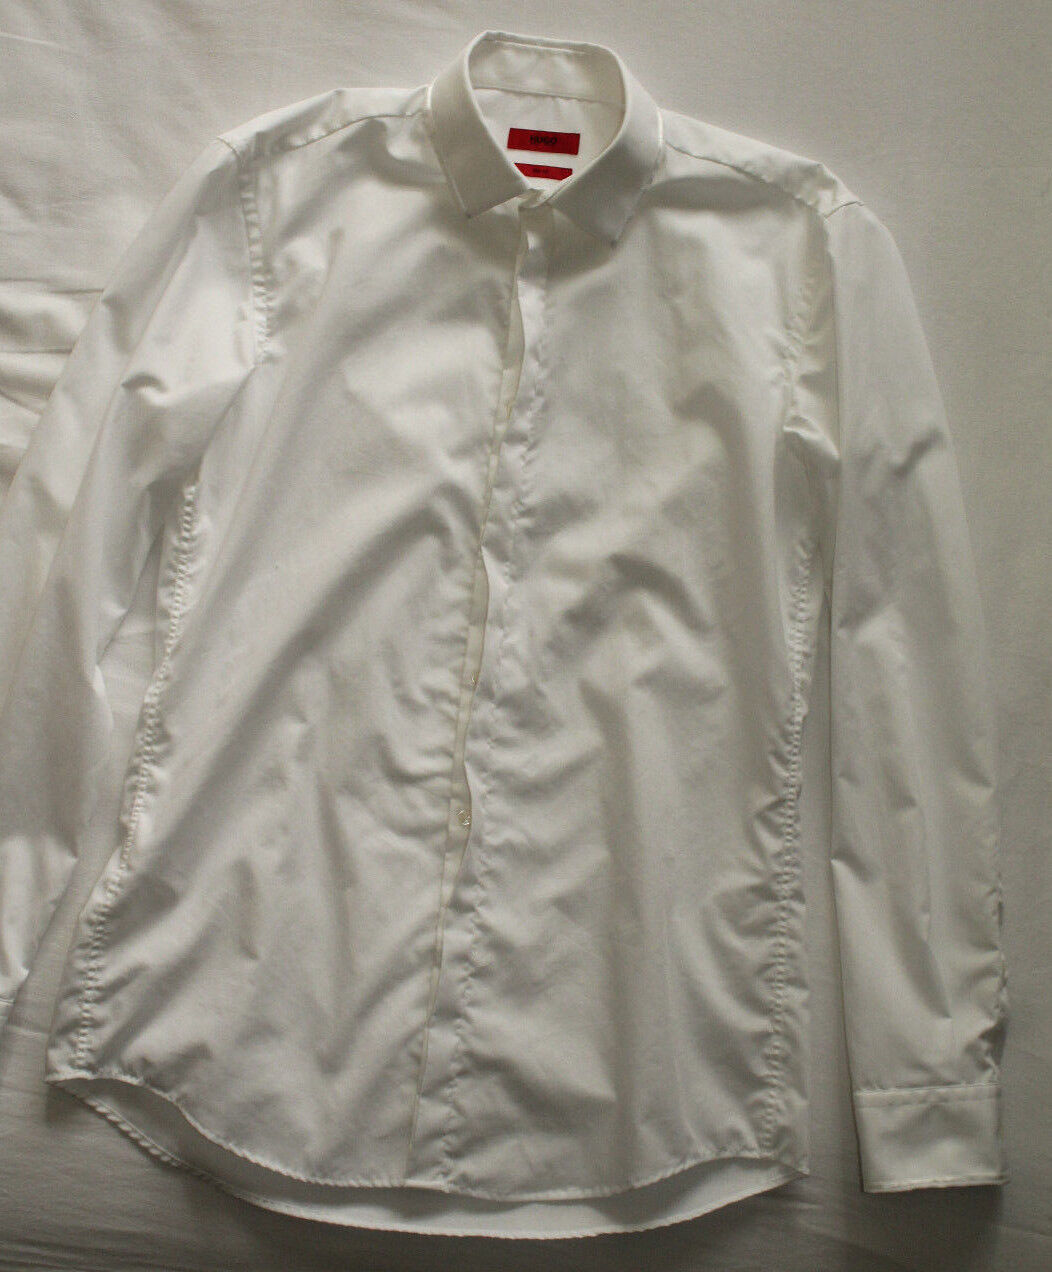 Hugo Boss Men's Slim Fit White Shirt Size 39 15 1 2 Good Used Condition